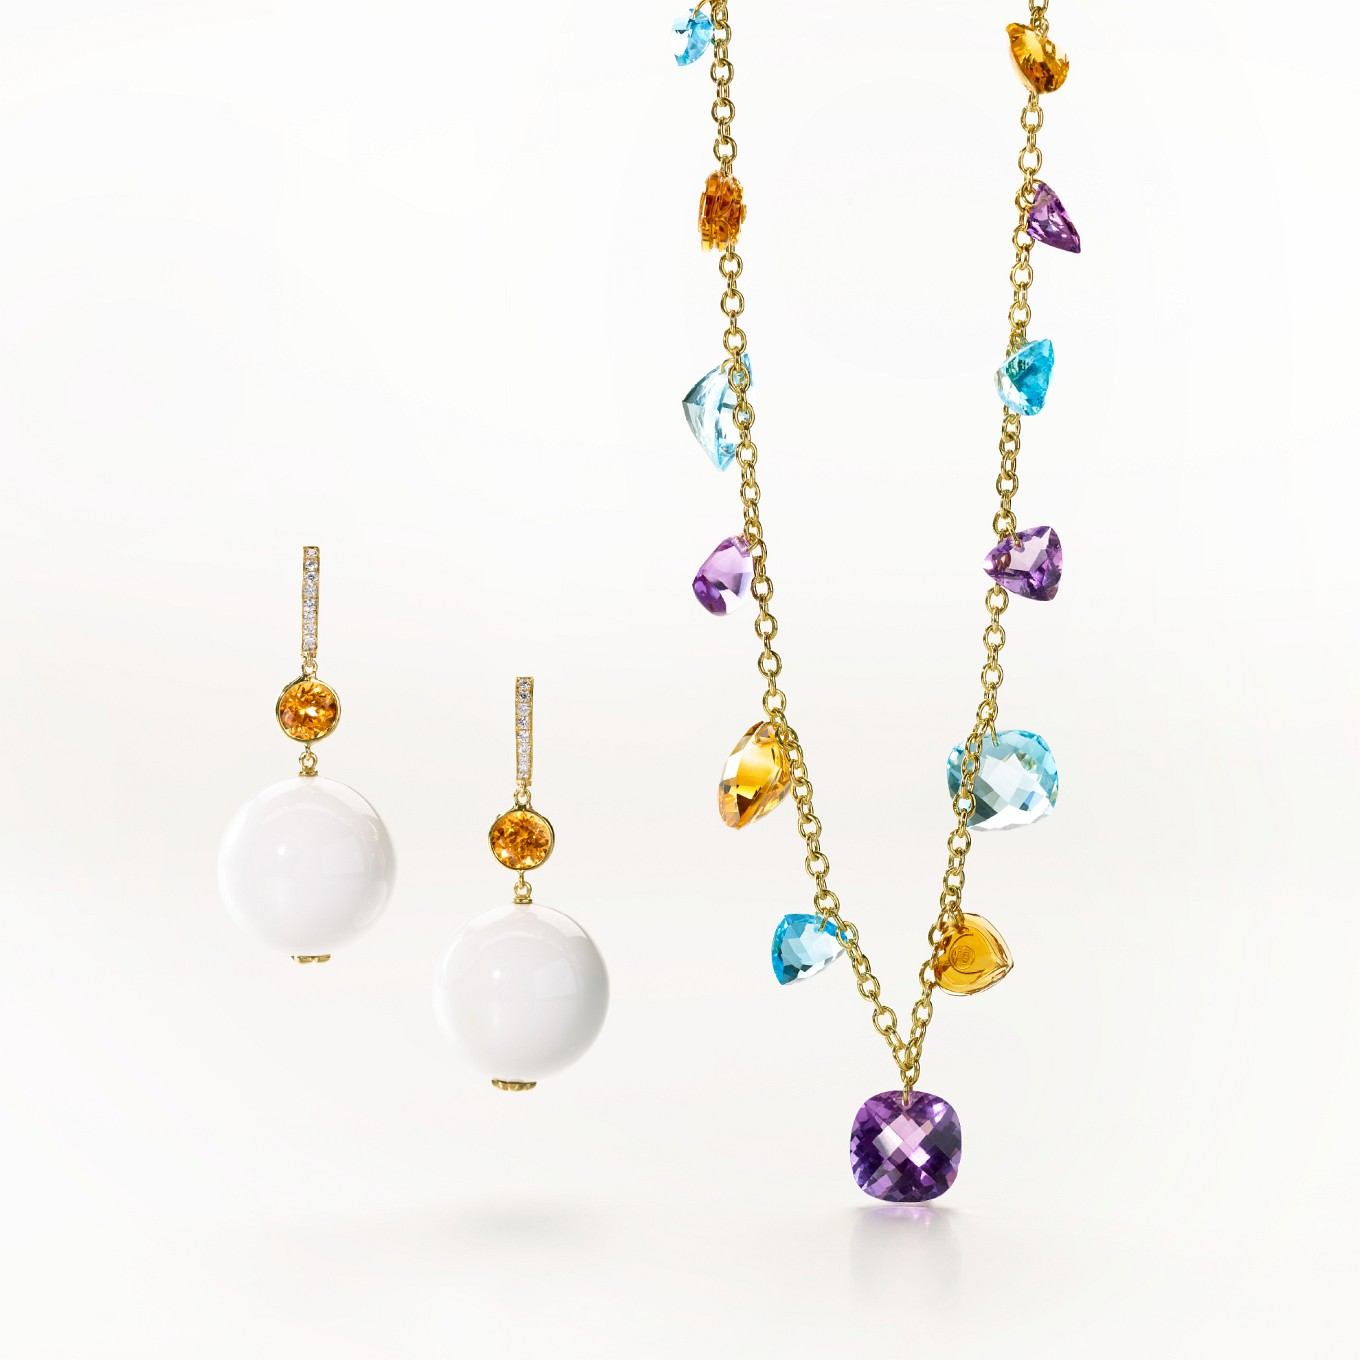 WHITE AGATE & SPESSARTITE GARNET EARRINGS WITH DIAMONDS. AMETHYST, CITRINE, BLUE TOPAZ & HAND MADE CHAIN NECKLACE